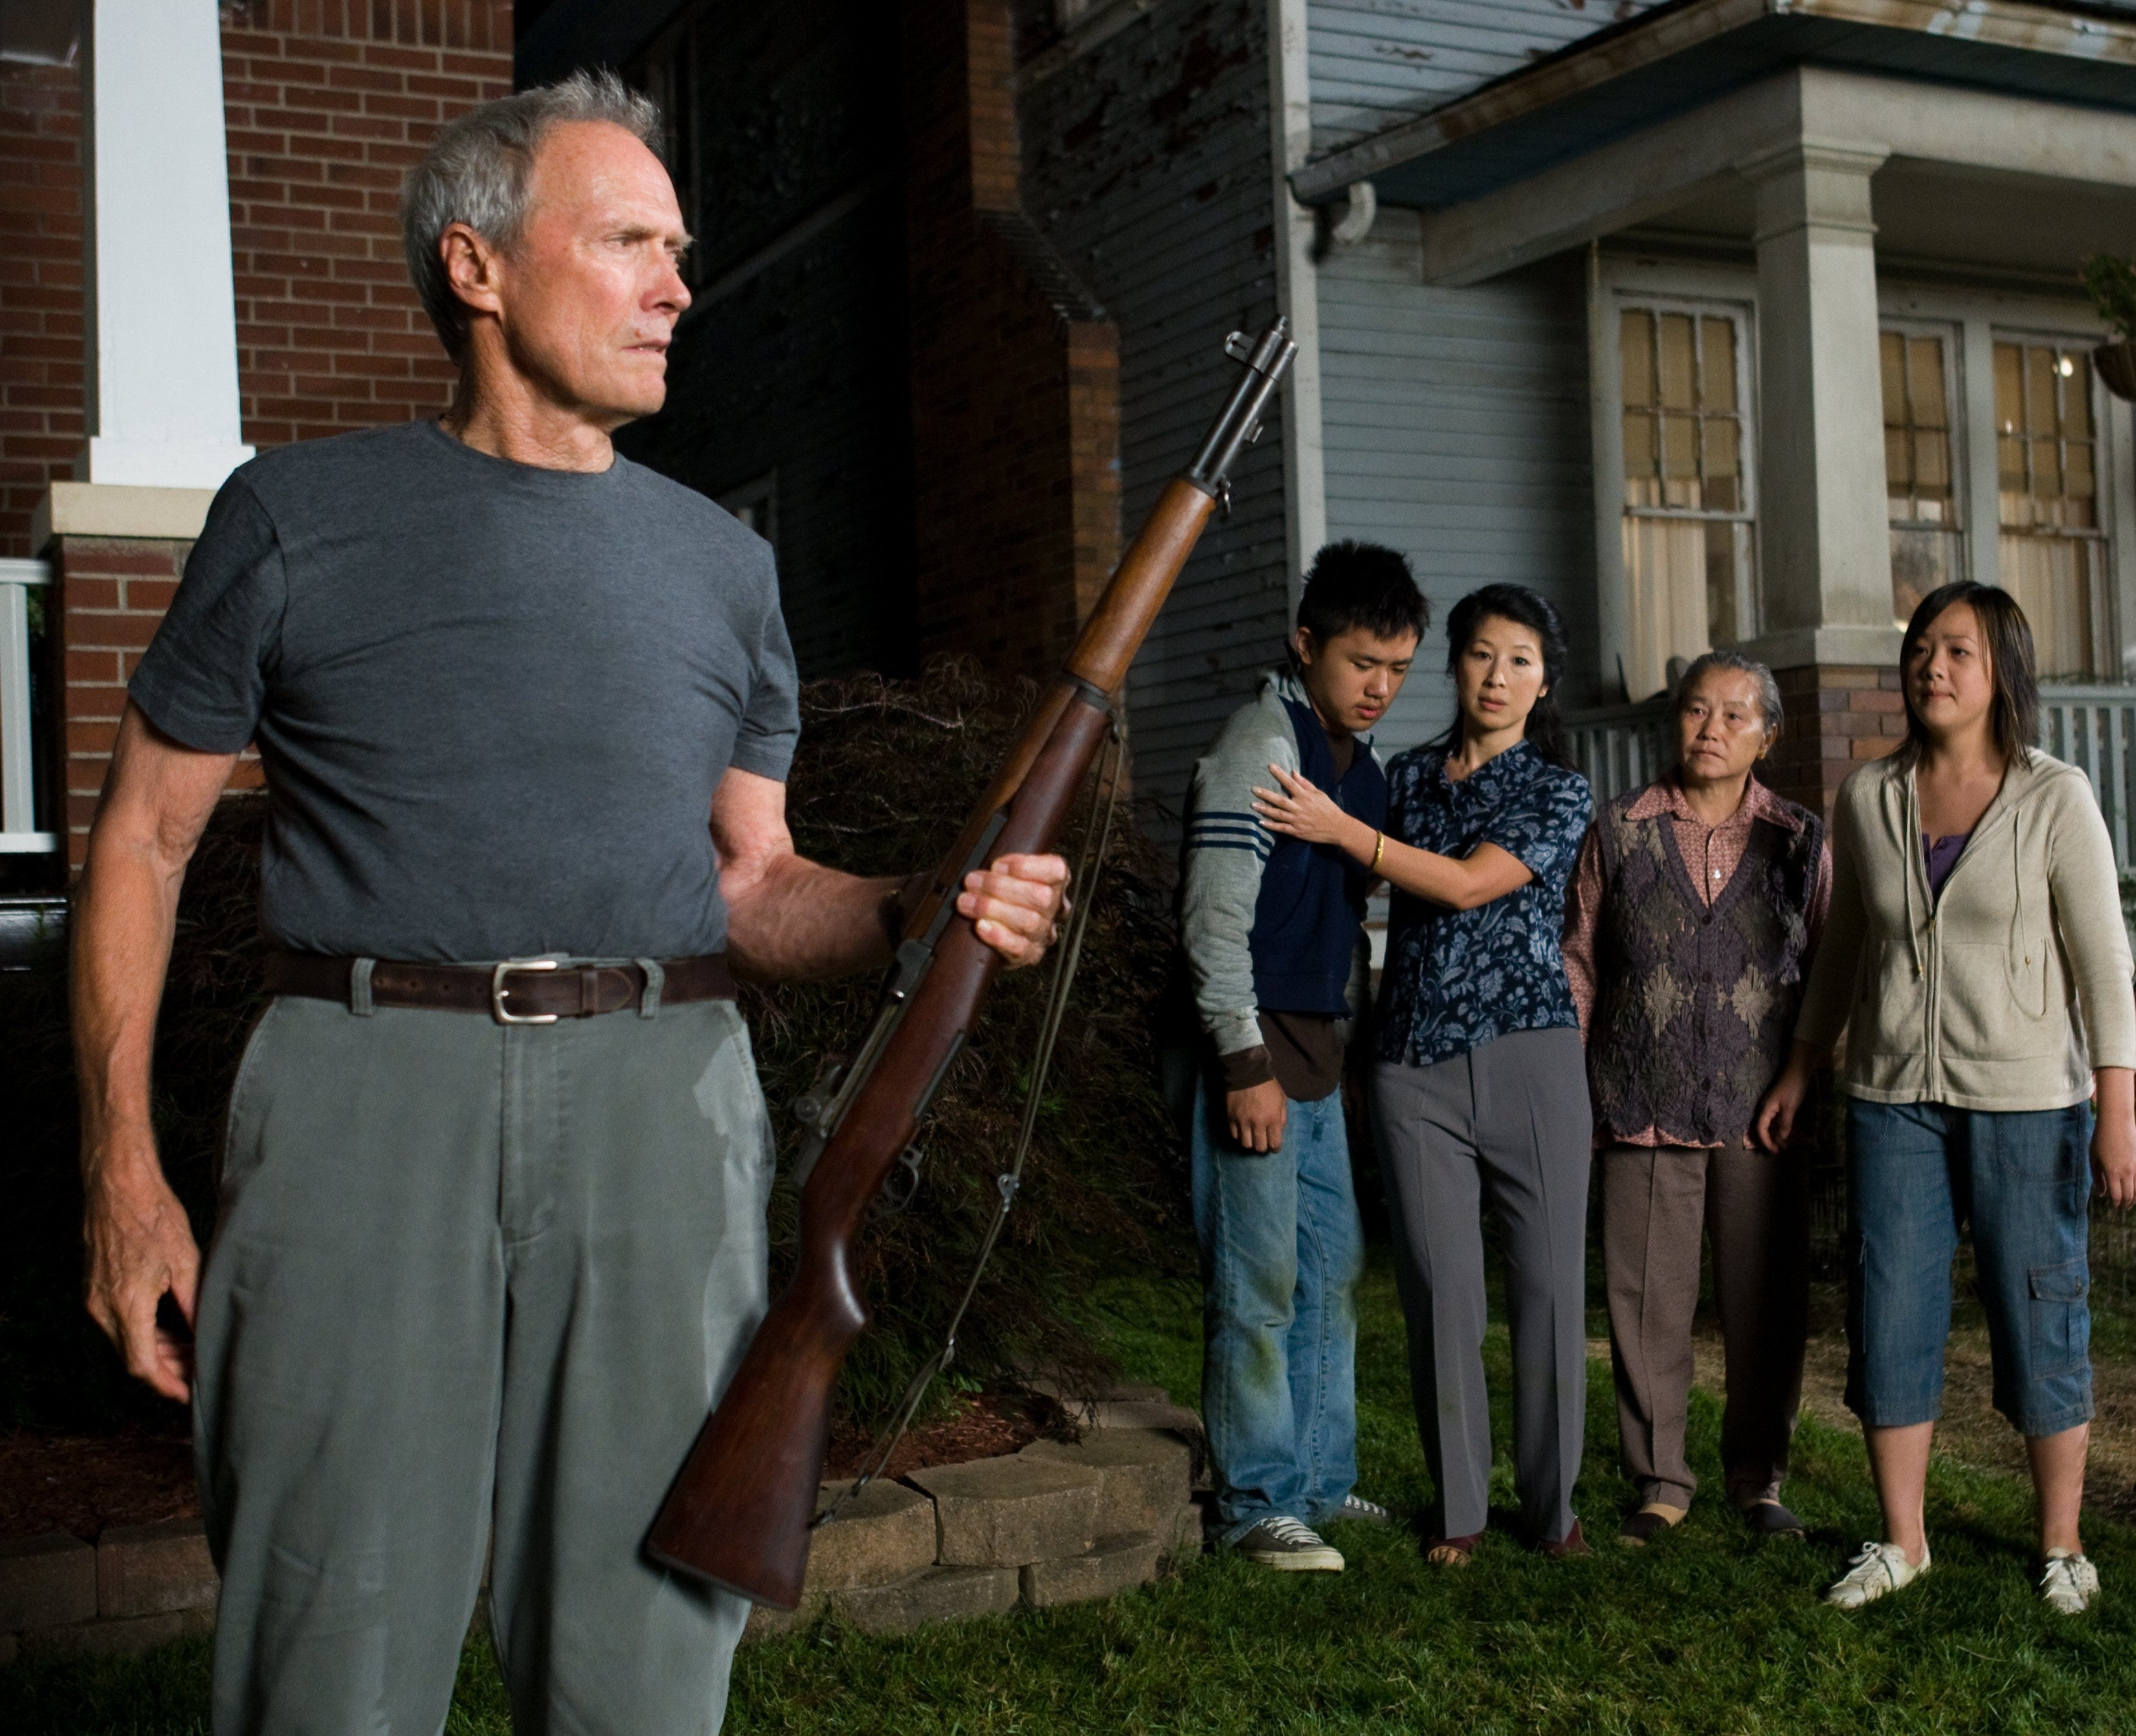 """Walt Kowalski, Thao, Vu, Grandma and Sue  in Warner Bros. Pictures and Village Roadshow Pictures drama """"Gran Torino,"""" distributed by Warner Bros. Pictures."""